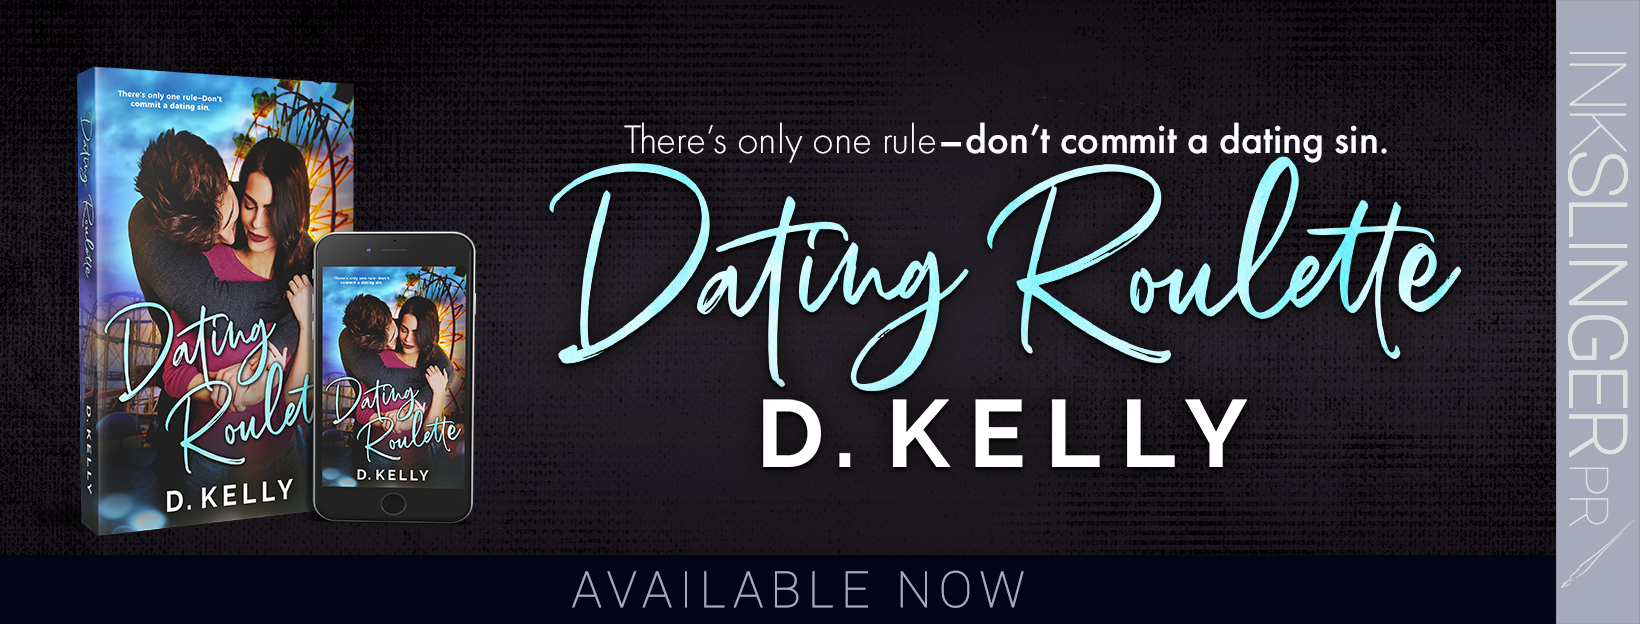 DatingRoulette-Banner-Available.png